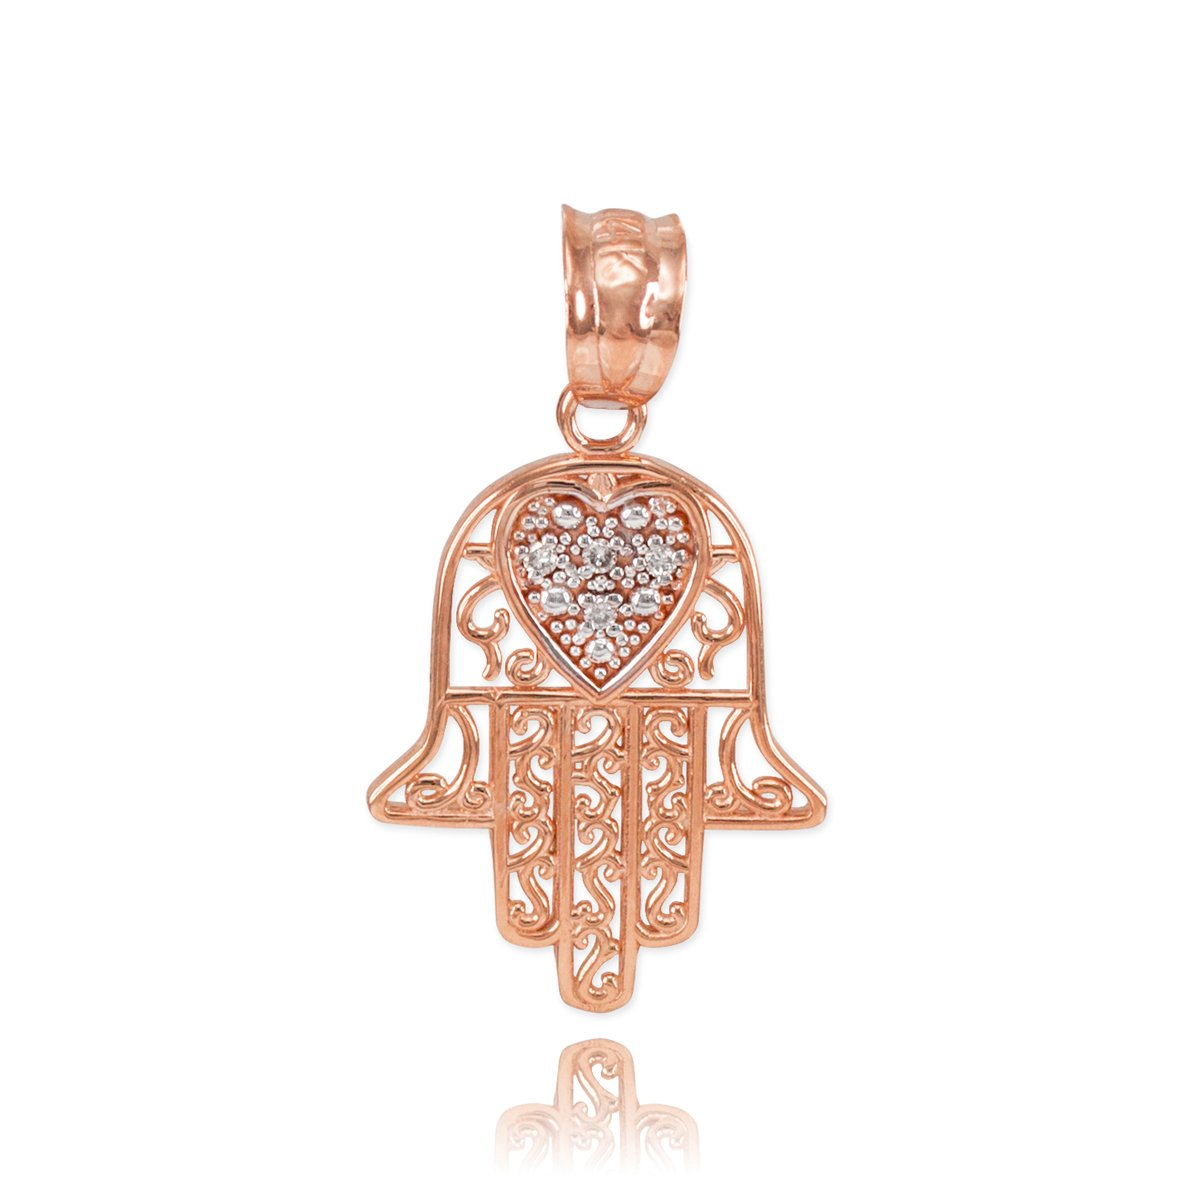 Solid 14k Rose Gold Diamond-Accented Heart Filigree-Style Hamsa Charm Pendant by Middle Eastern Jewelry